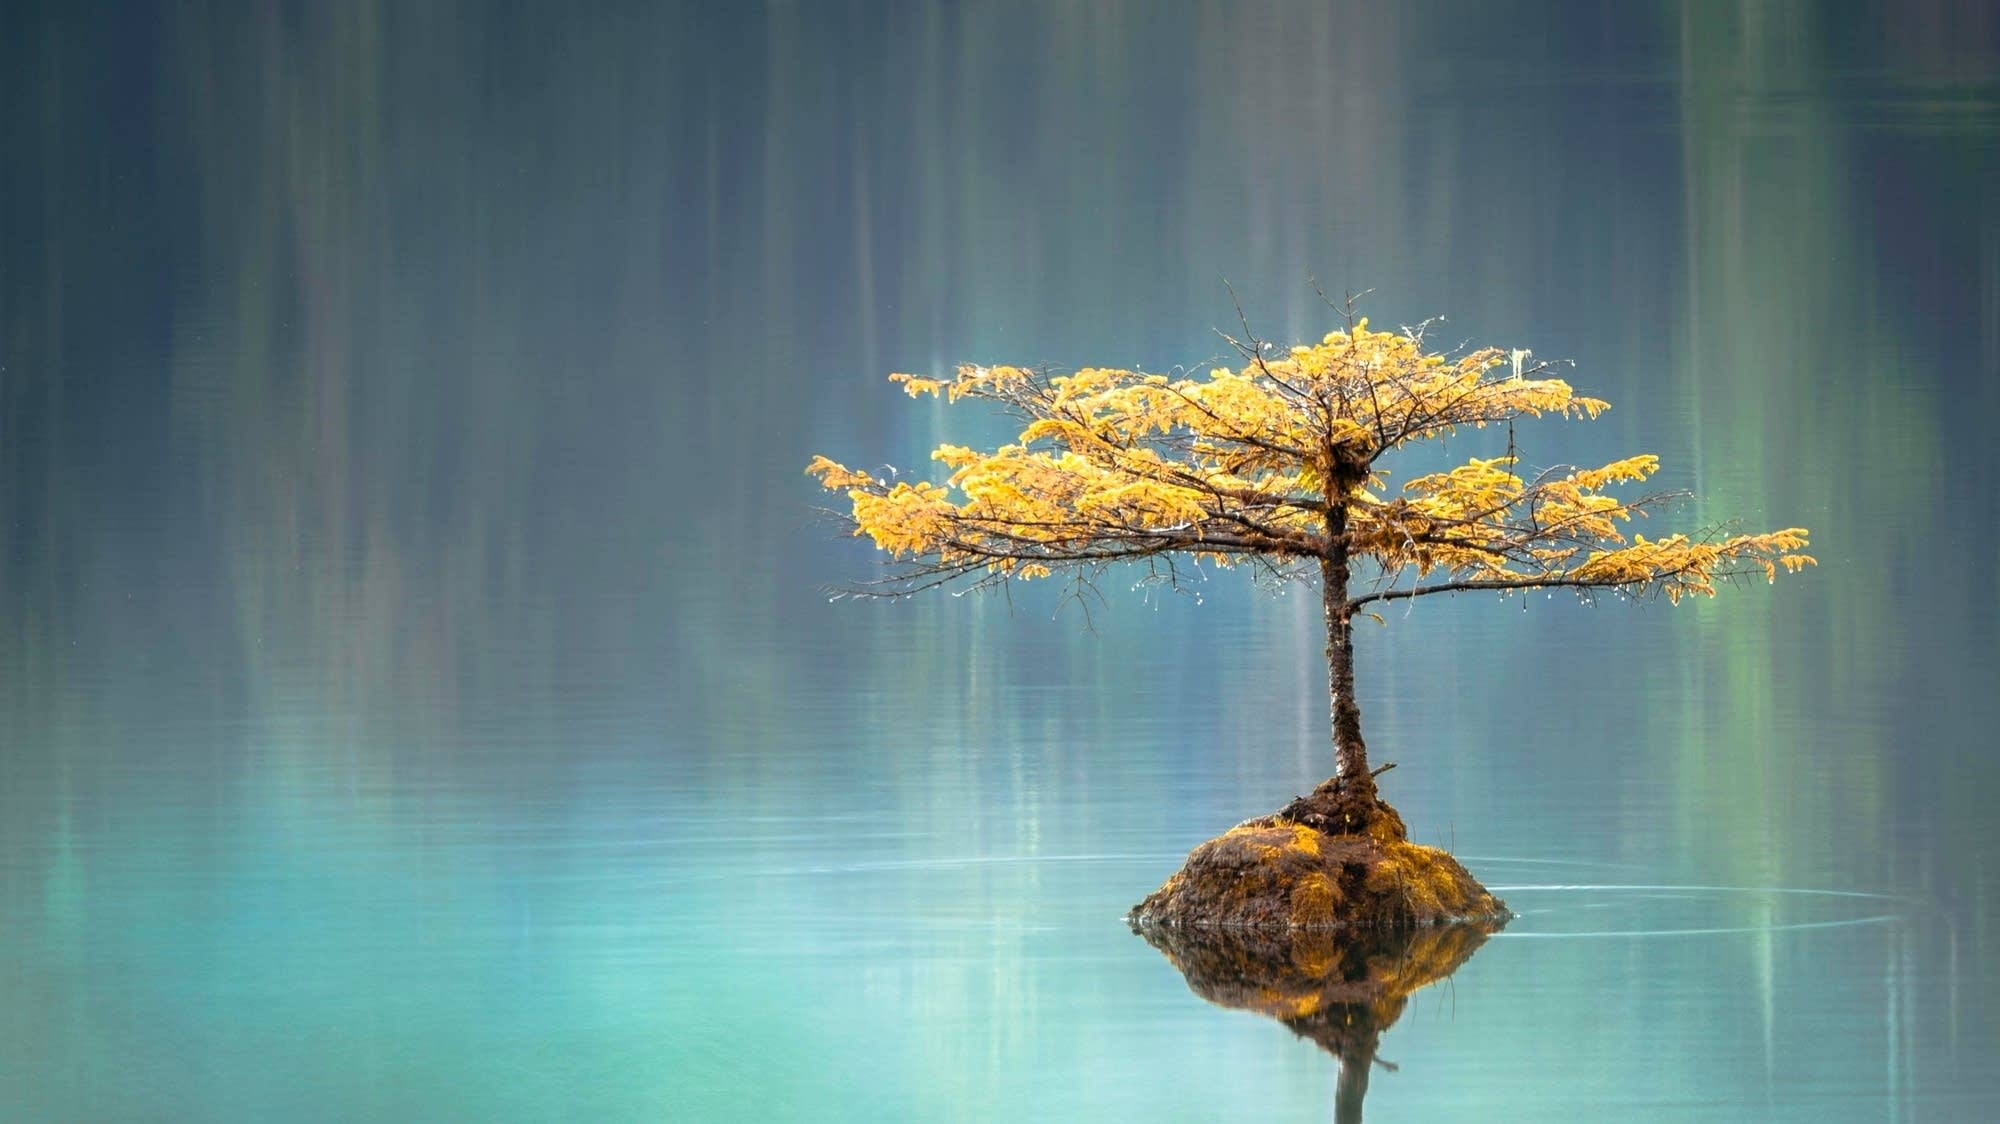 A young sapling emerges from a calm Canadian lake.